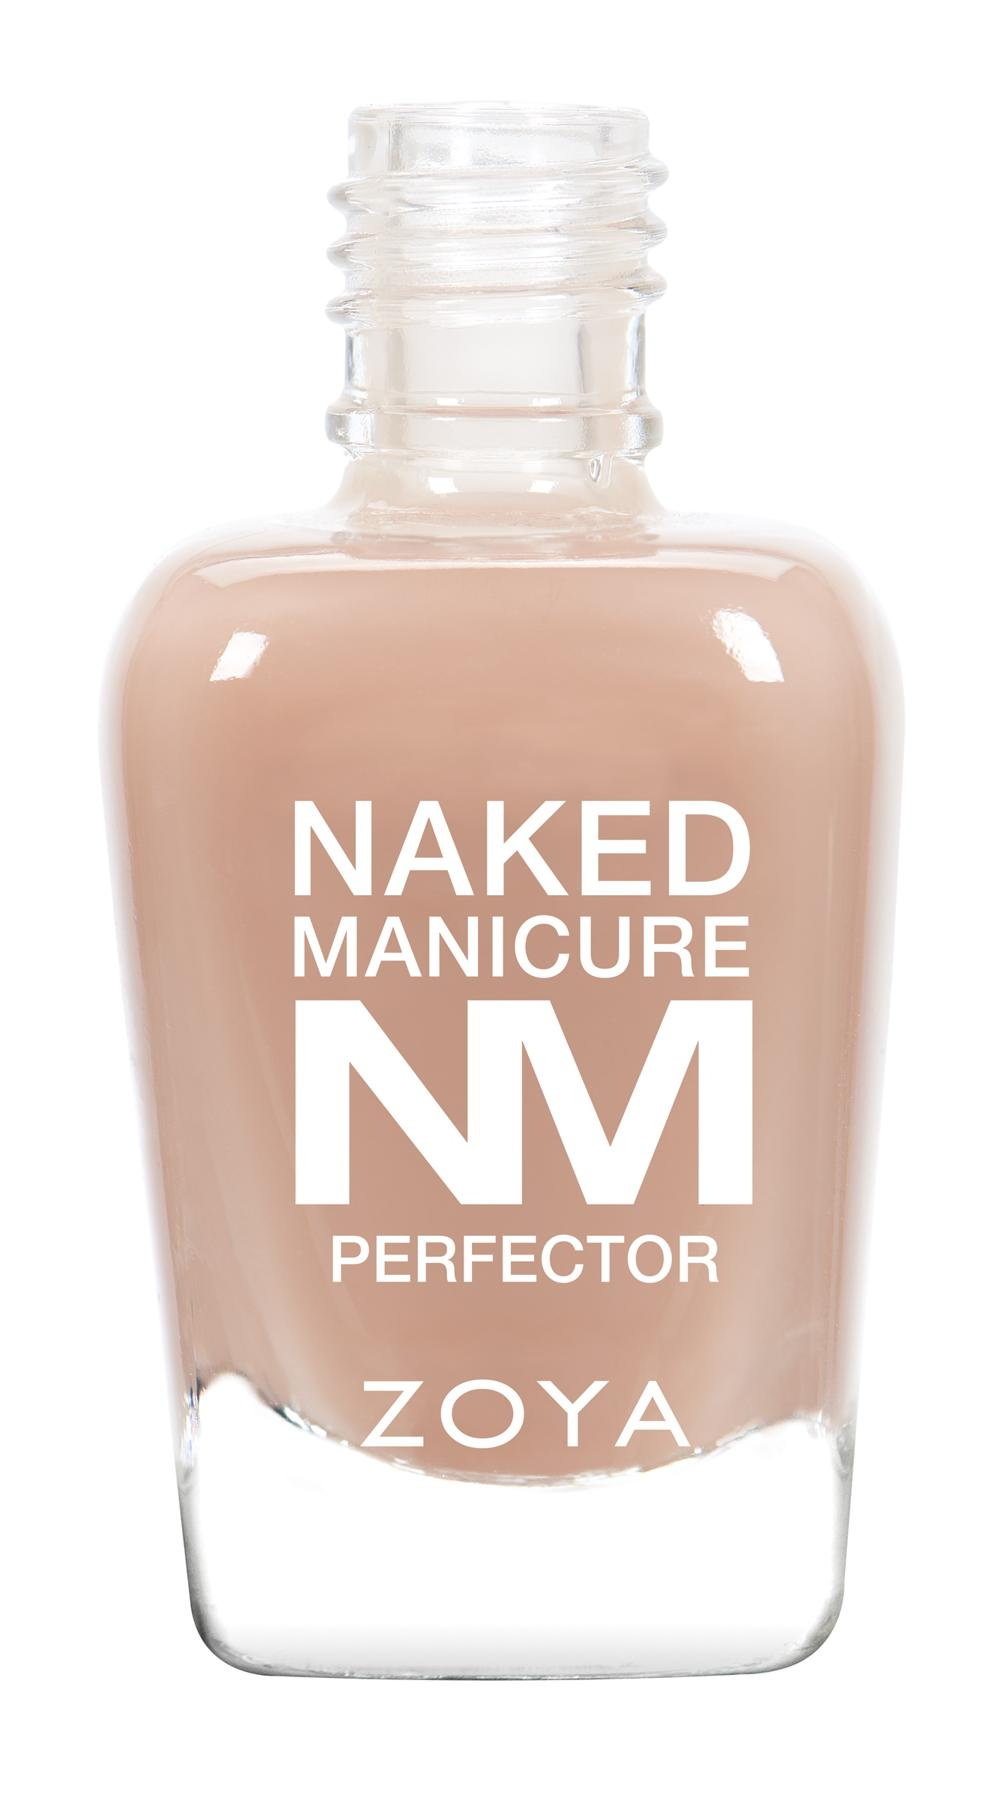 Zoya Naked Manicure Nude Perfector product impression